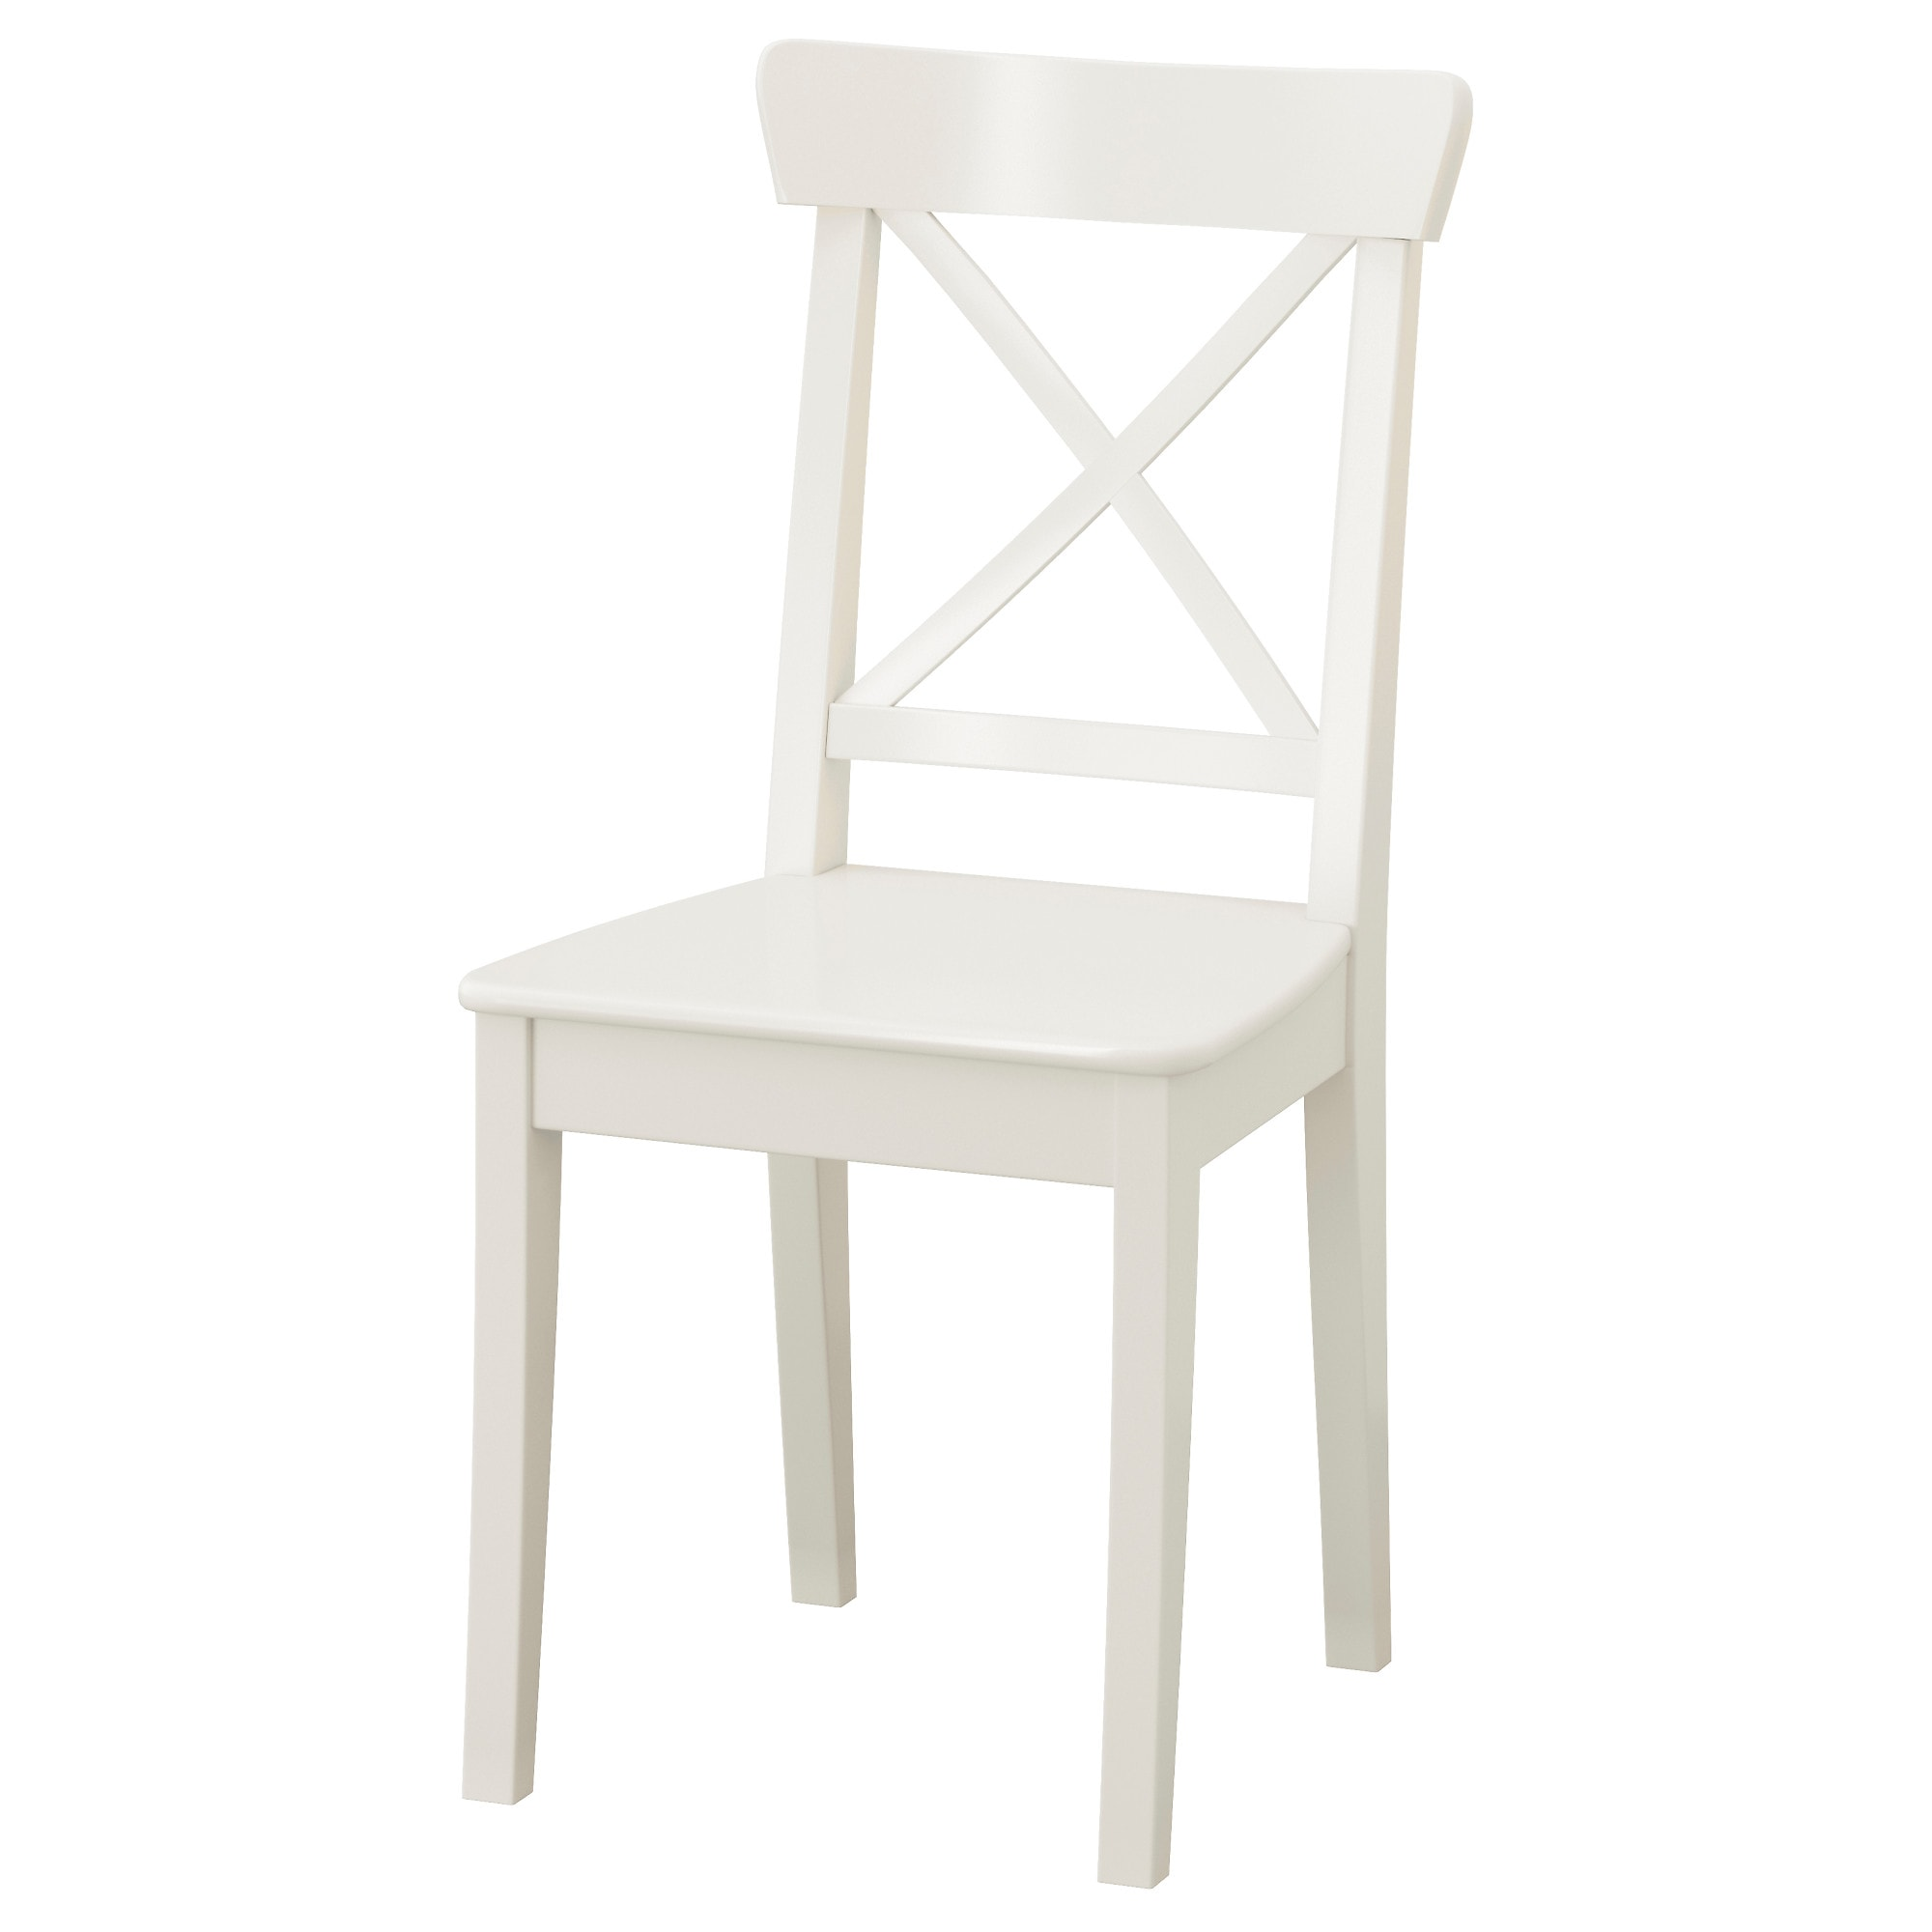 white chairs ikea ikea. White Chairs Ikea K